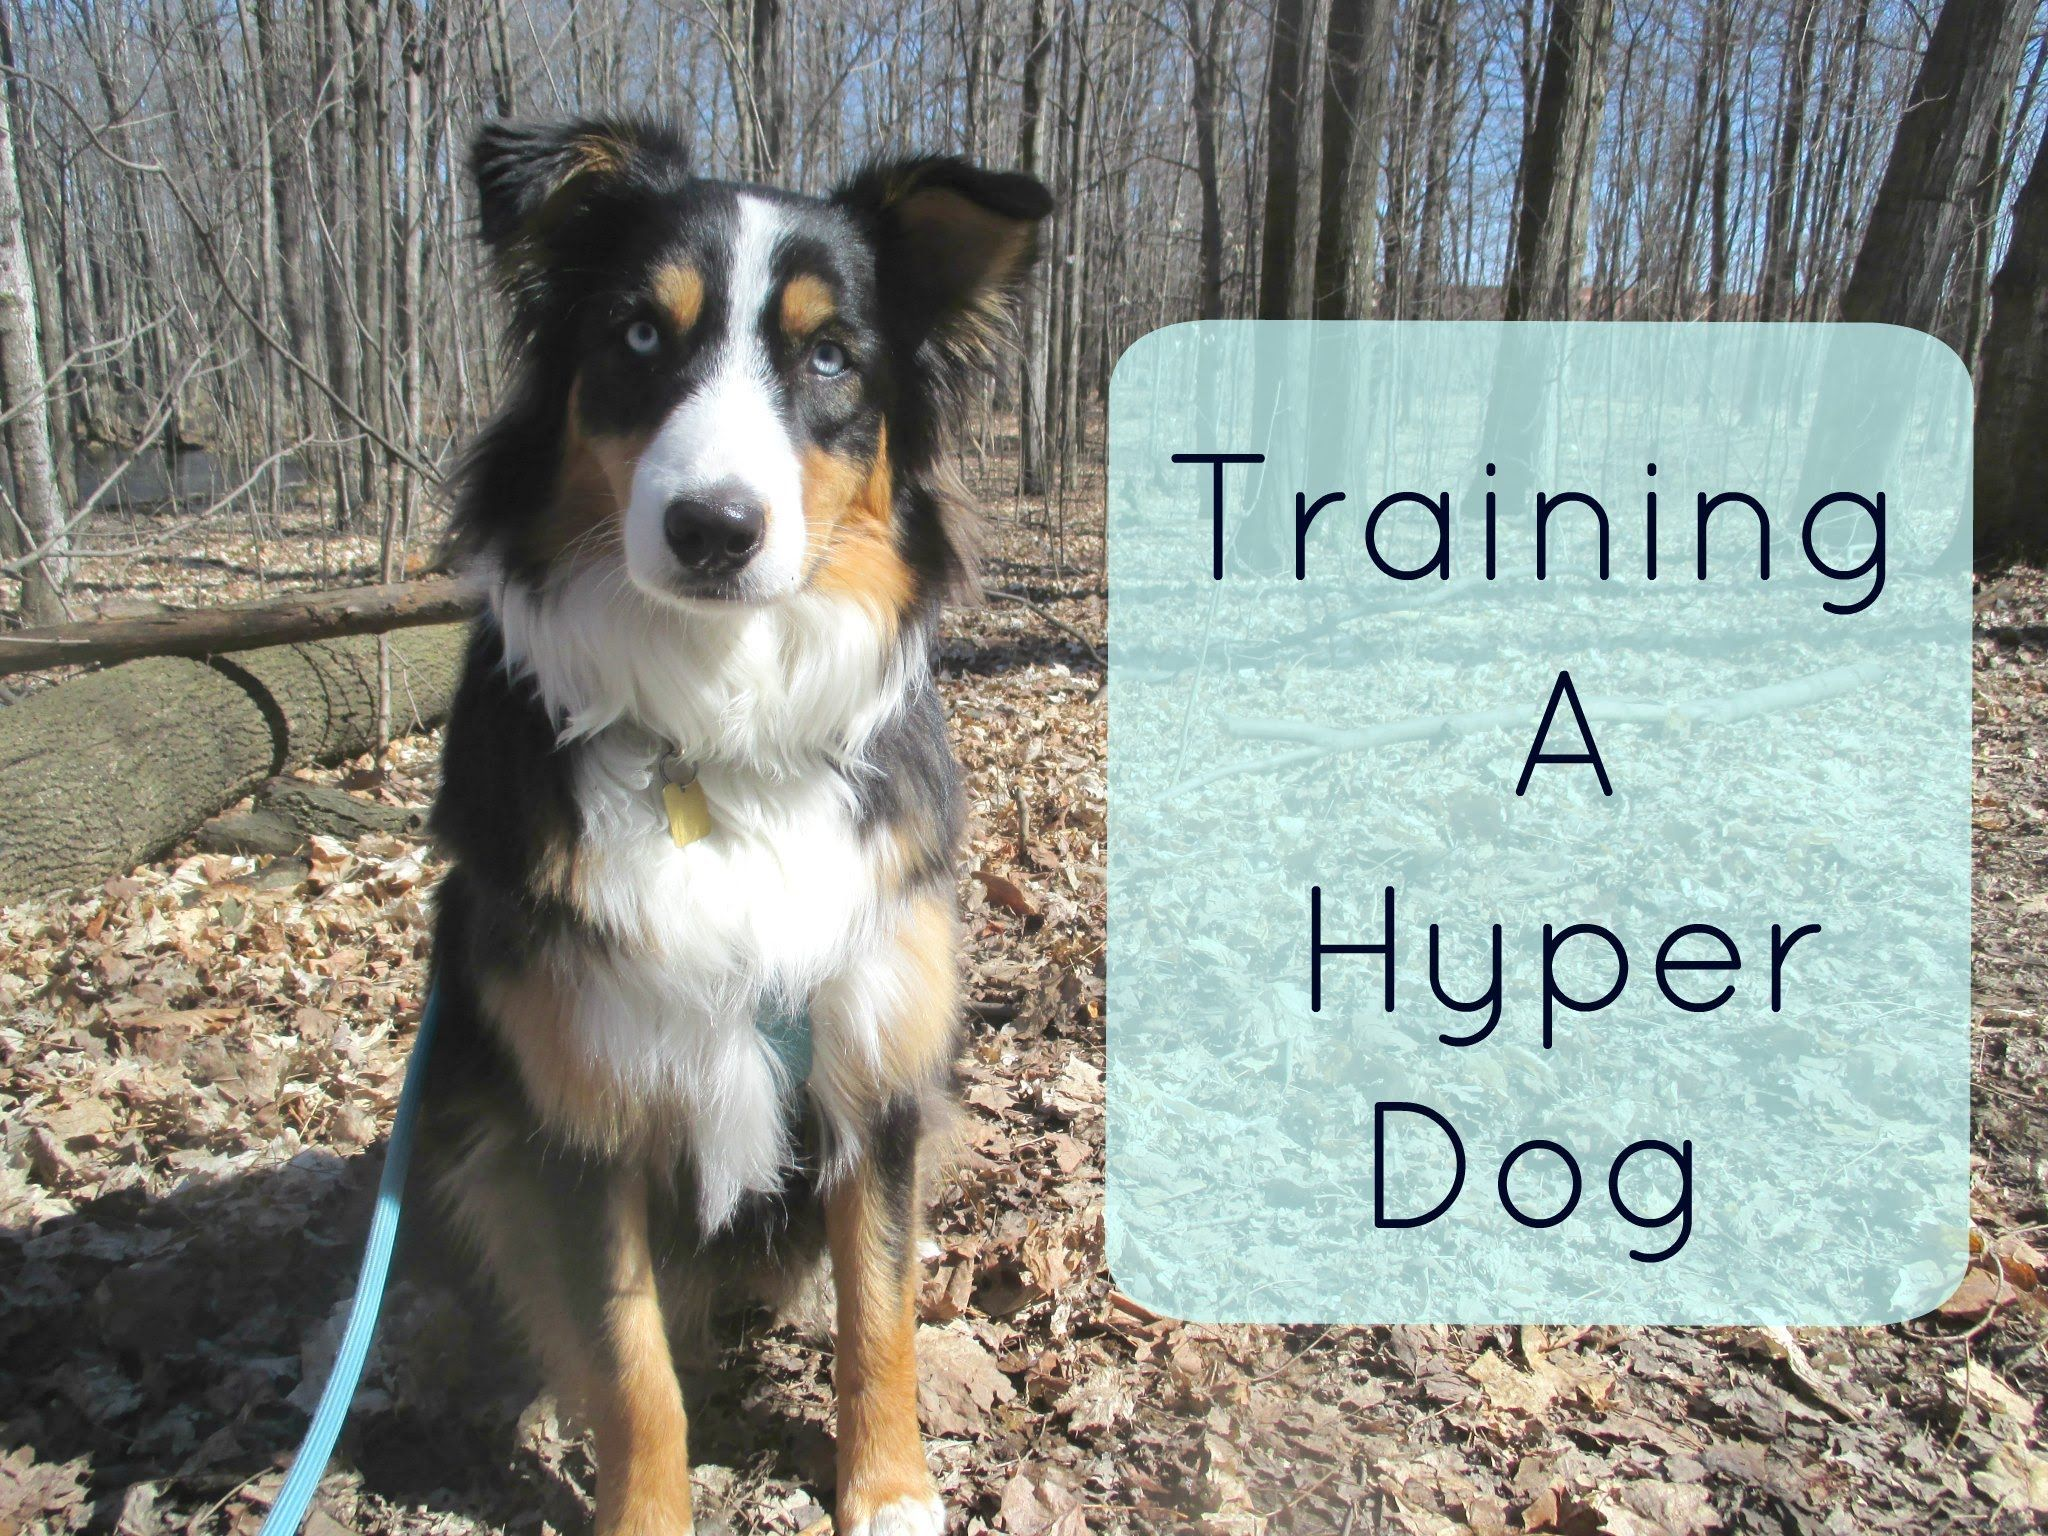 Training A Hyper Dog Tips And Tricks For Traning An Australian